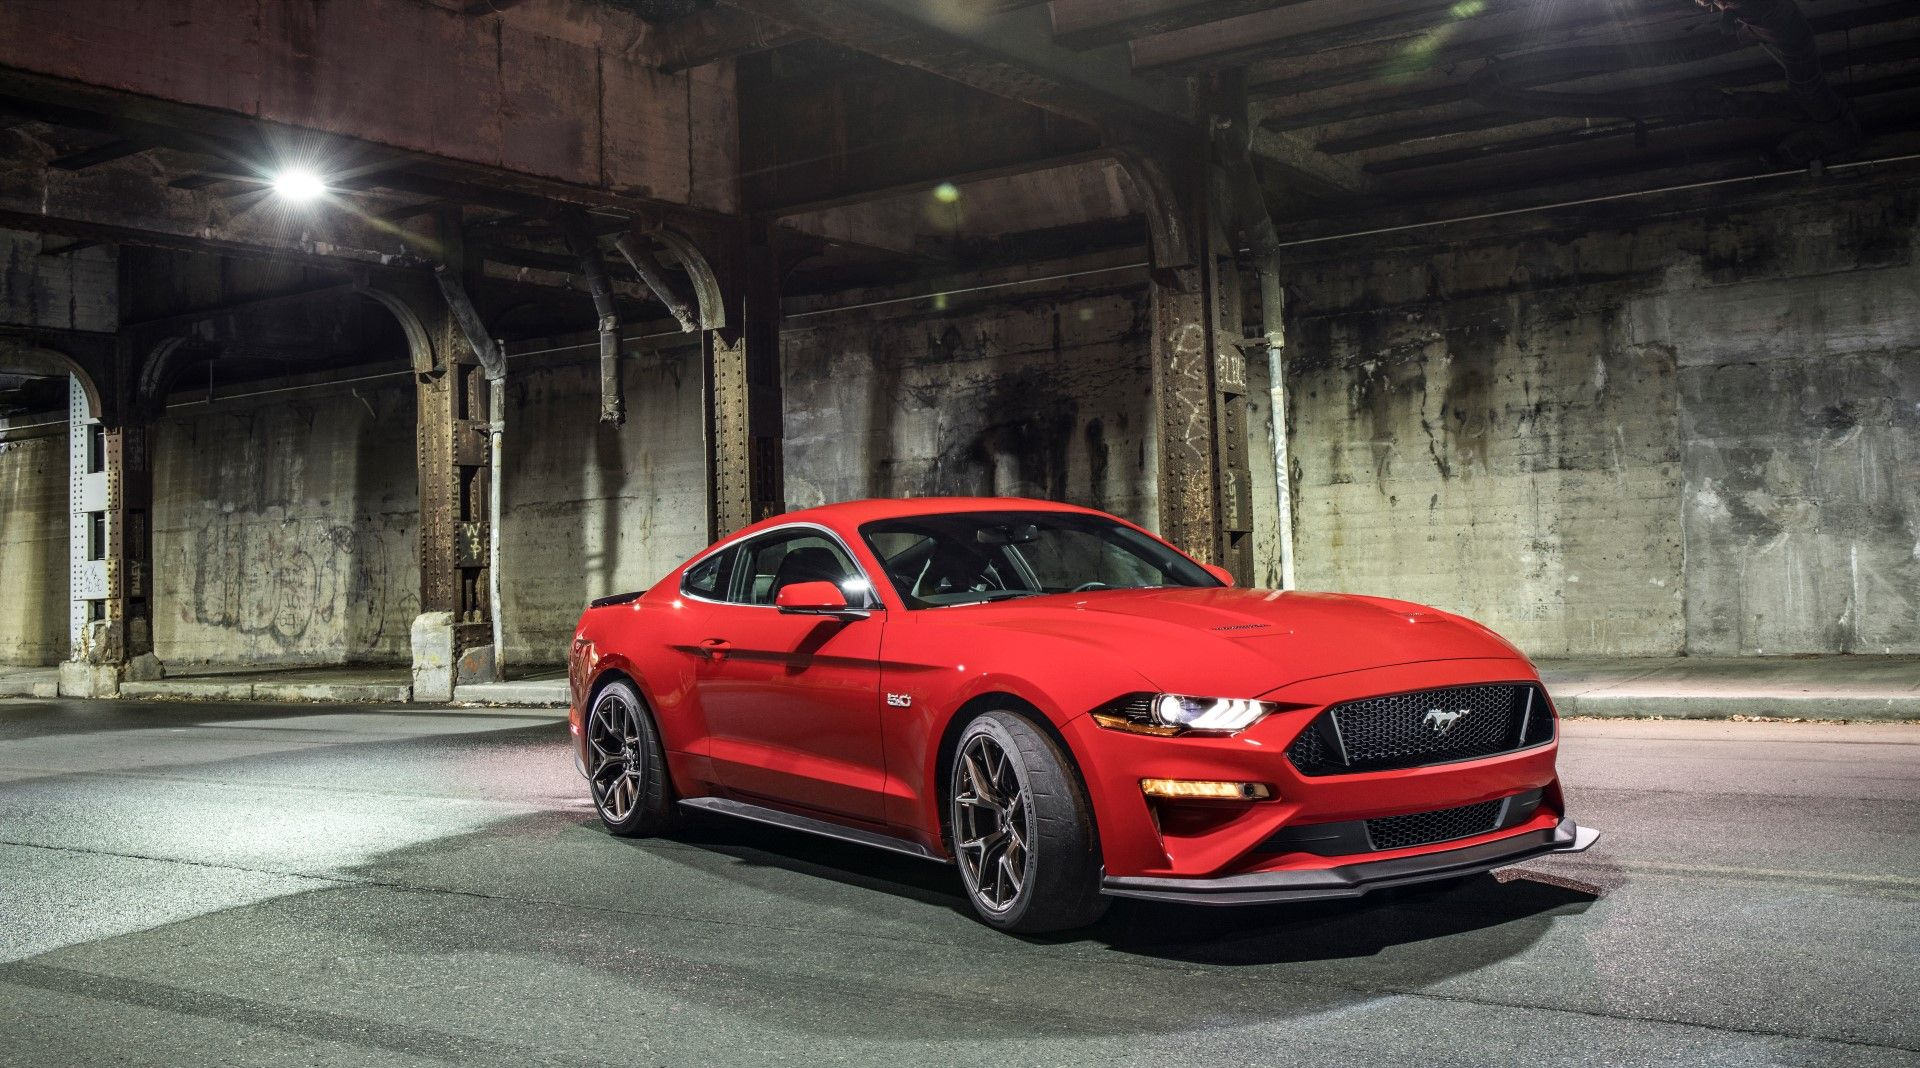 2018 Ford Mustang Gt With Performance Pack Level 2 Ford Mustang